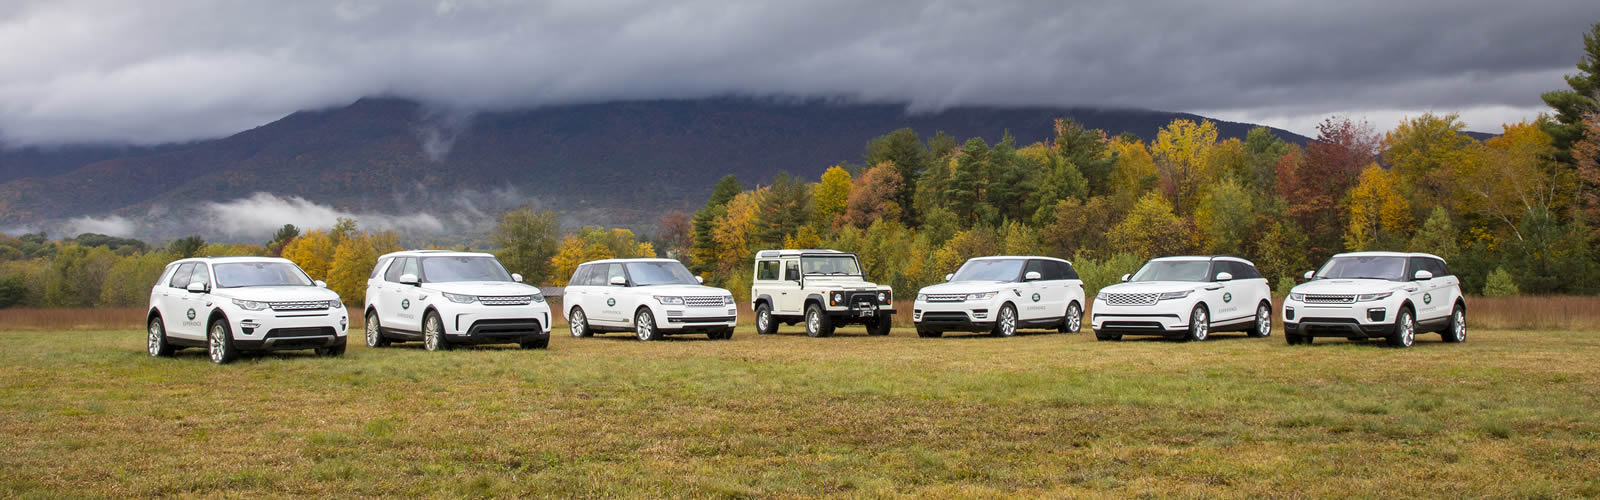 Go the distance while social distancing. Land Rover Experience Centers Are Open.